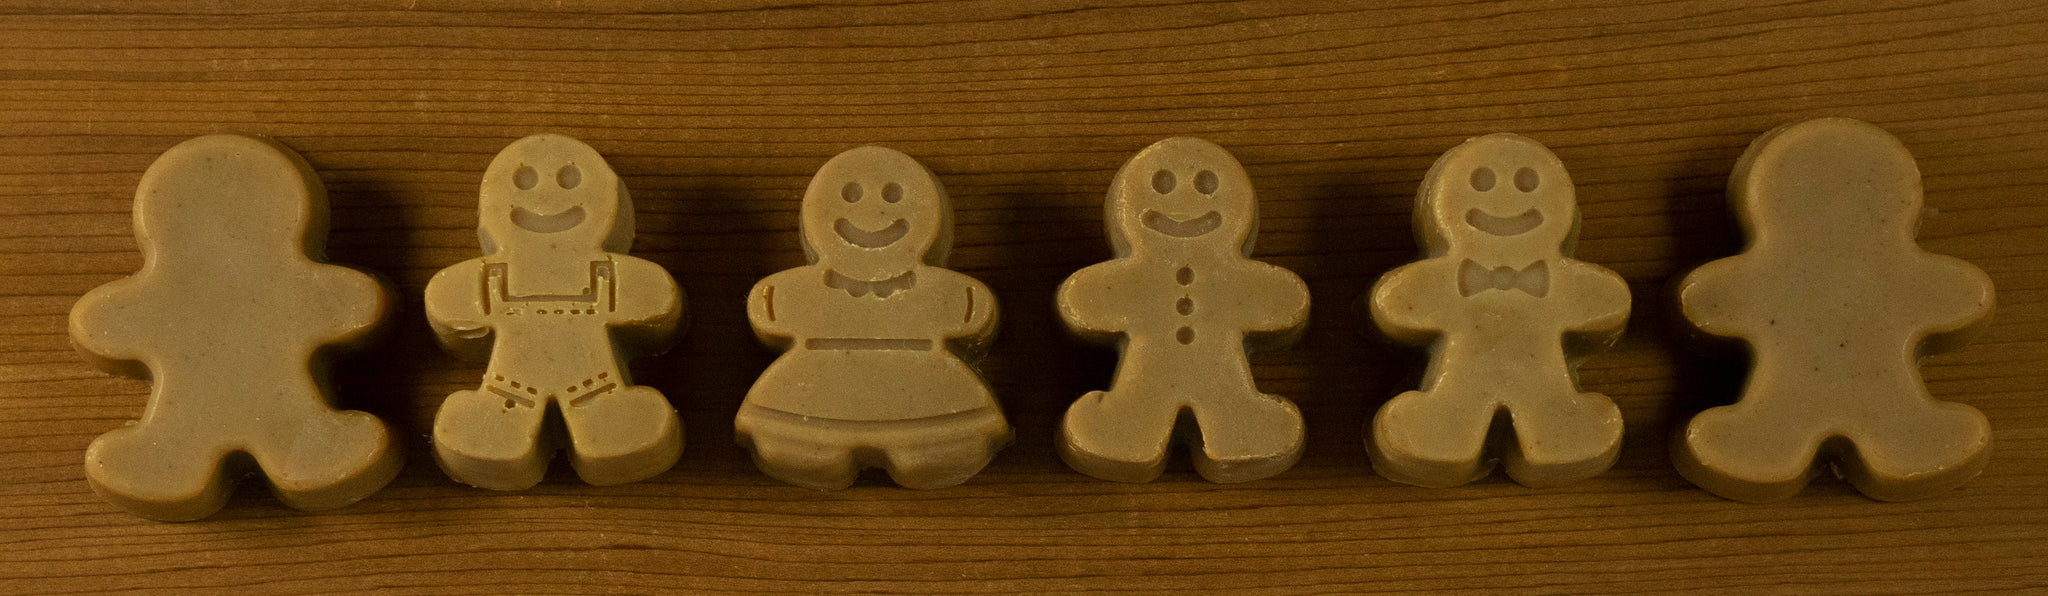 Holiday Stocking Stuffer! Gingerbread People!